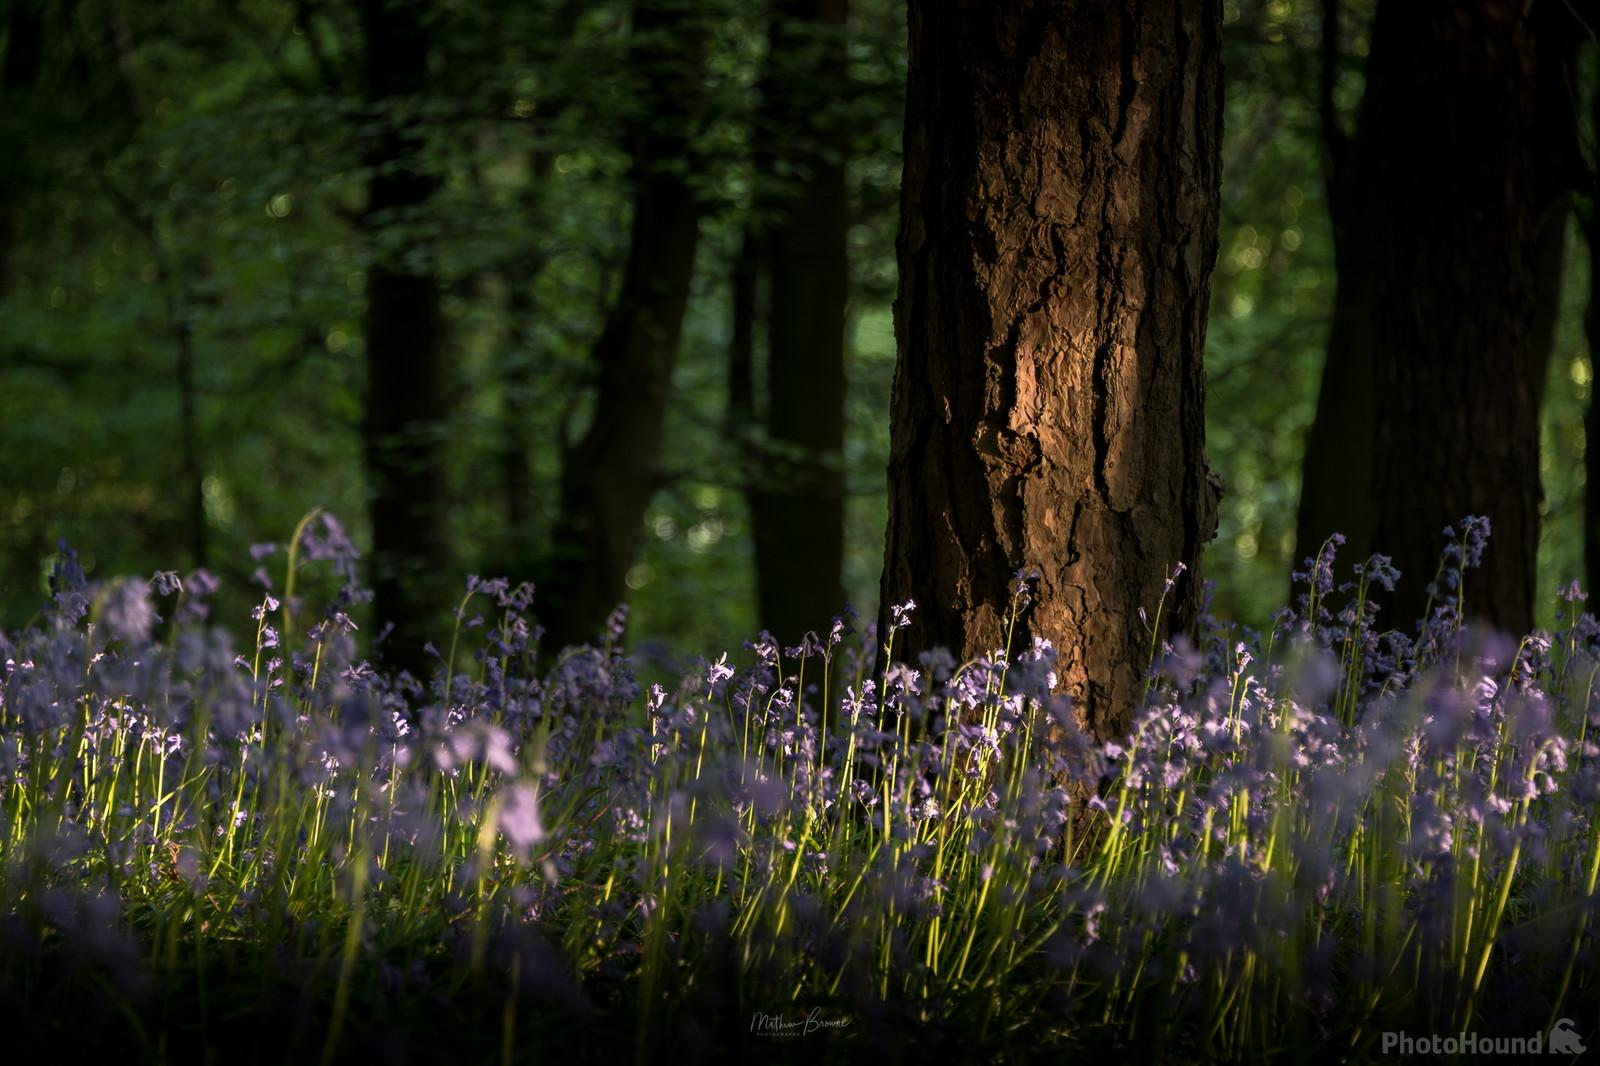 A low angle shot of the bluebells in spring.